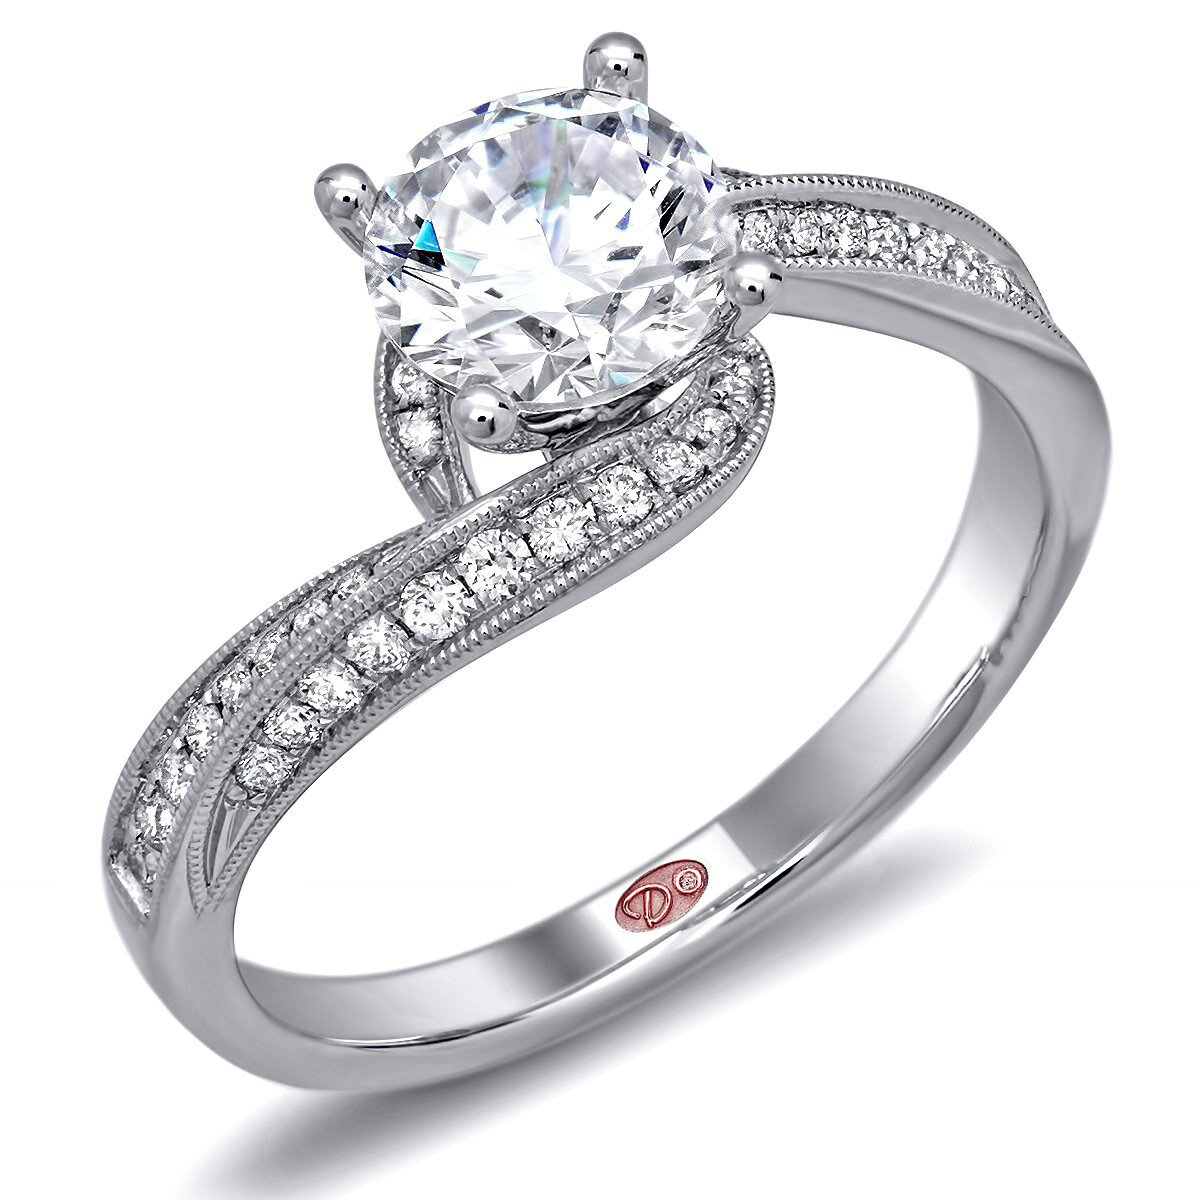 16 dreamy designs of engagement rings for women mostbeautifulthings. Black Bedroom Furniture Sets. Home Design Ideas